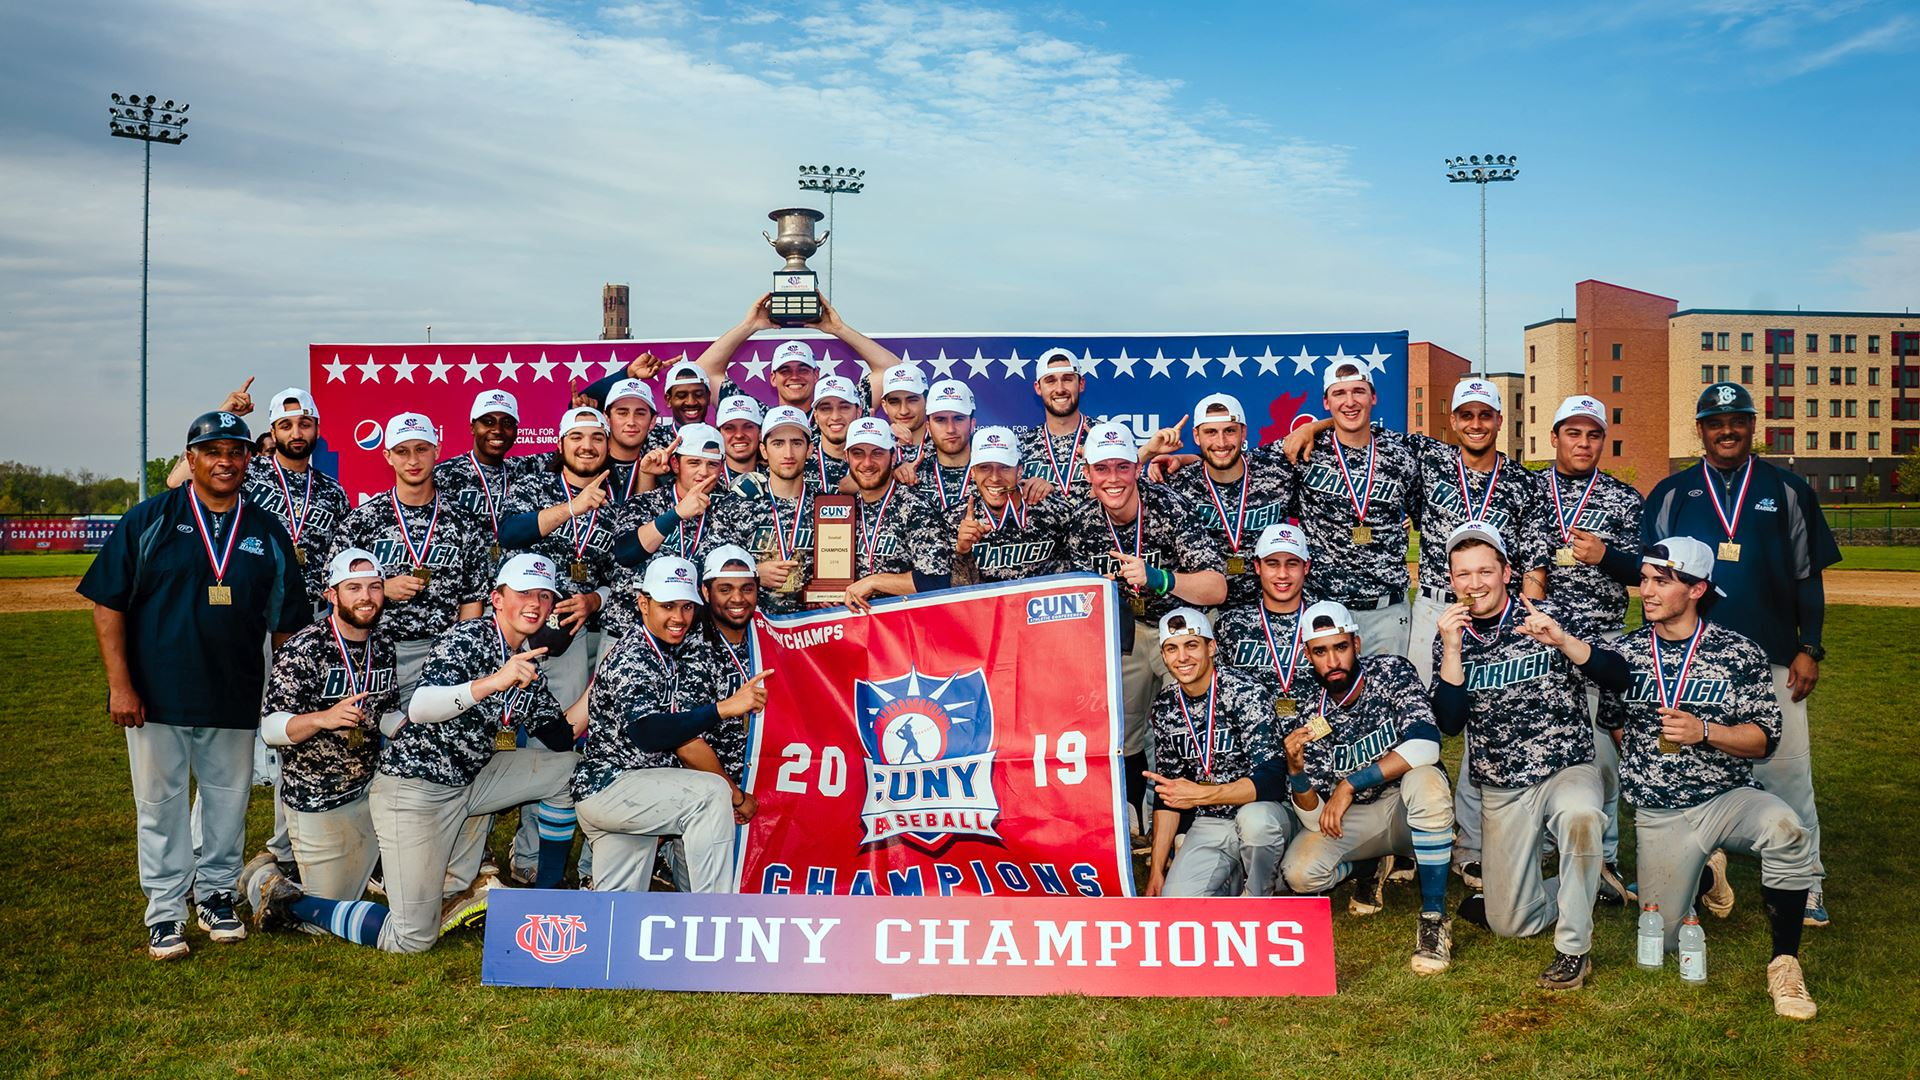 The Baruch Bearcats completed a CUNYAC title trifecta, with the men's baseball, volleyball and tennis teams clinching regular season conference championships and securing their spots in their NCAA Tournaments.  Denis Gostev | Baruch Athletics